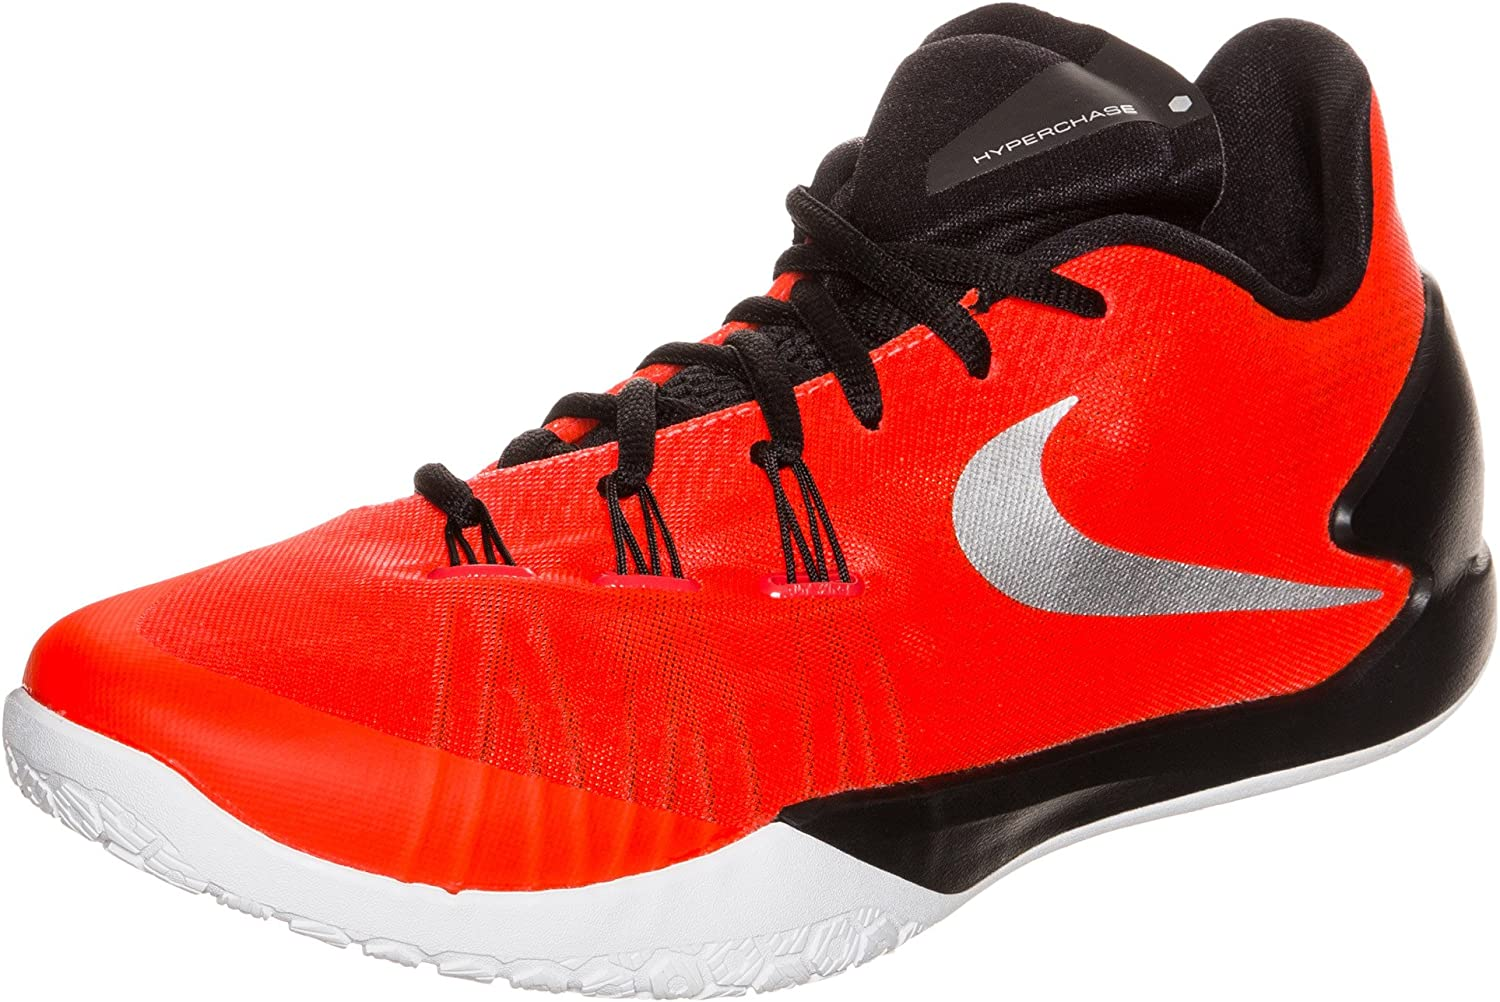 Nike HYPERCHASE mens basketball trainers 705363 sneakers shoes